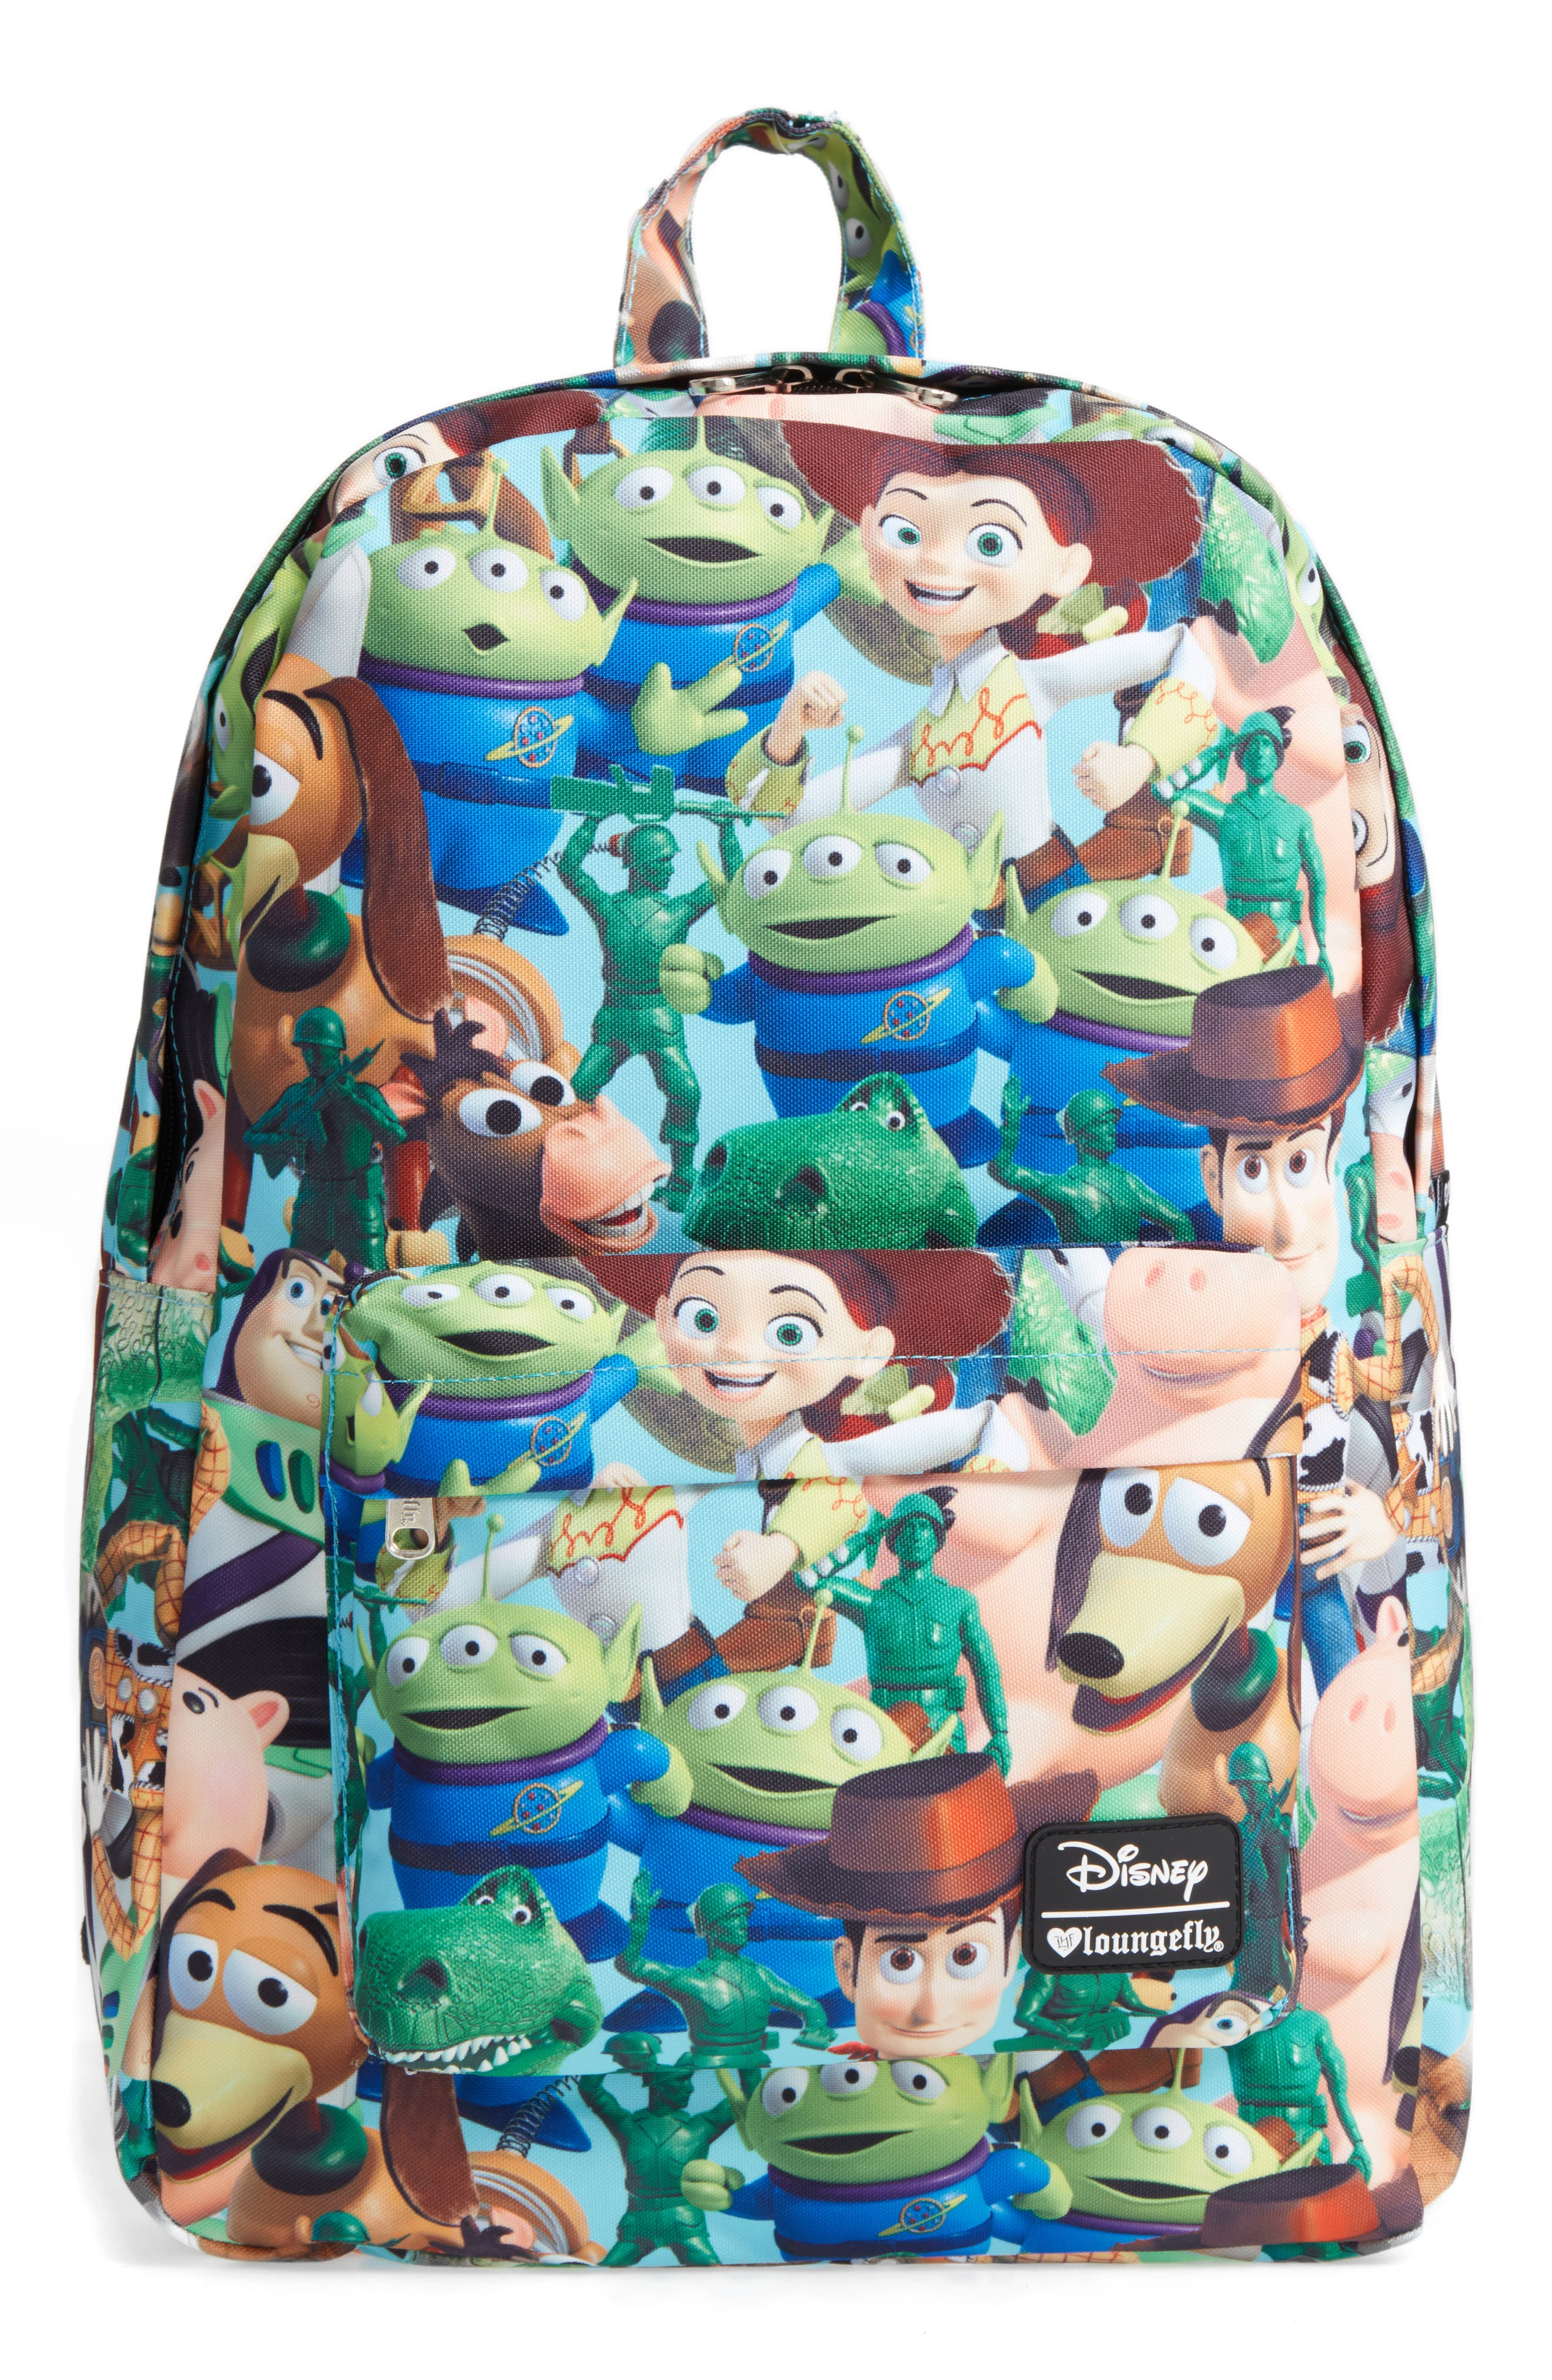 Alternate Image 1 Selected - Loungefly Disney® Toy Story Backpack (Kids)